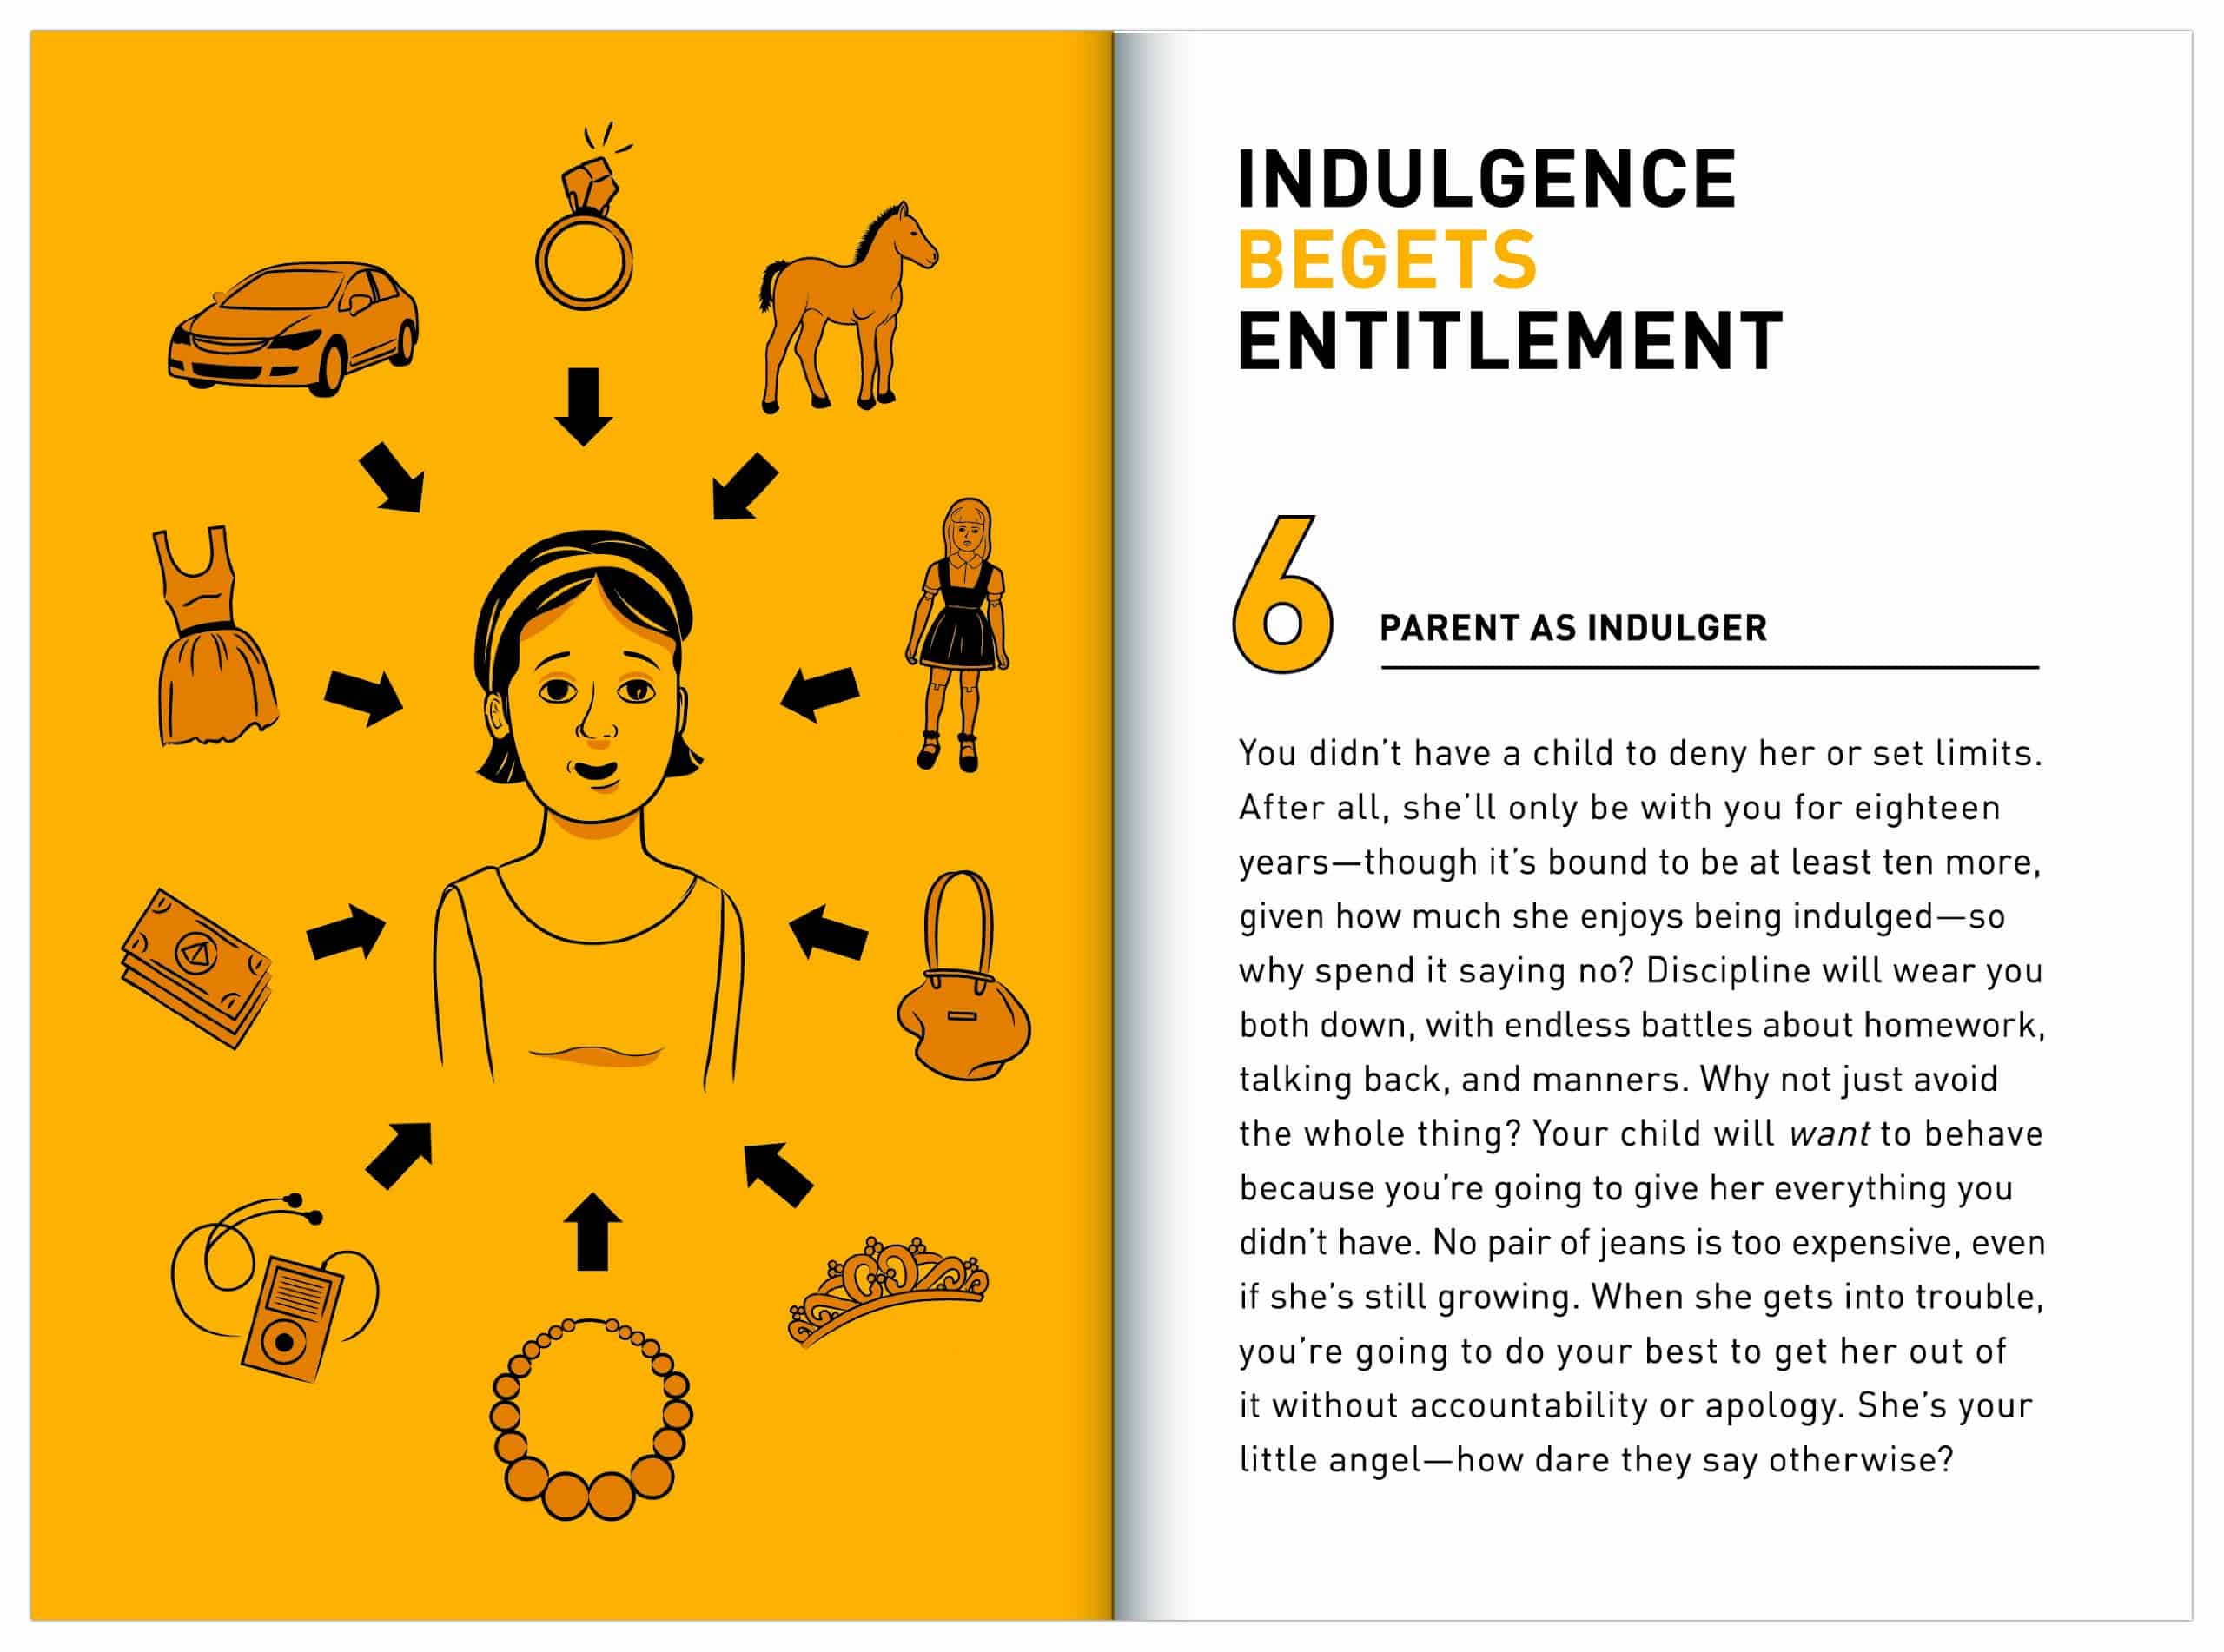 How to Traumatize Your Children 7 Proven Methods Indulgement begets Entitlement